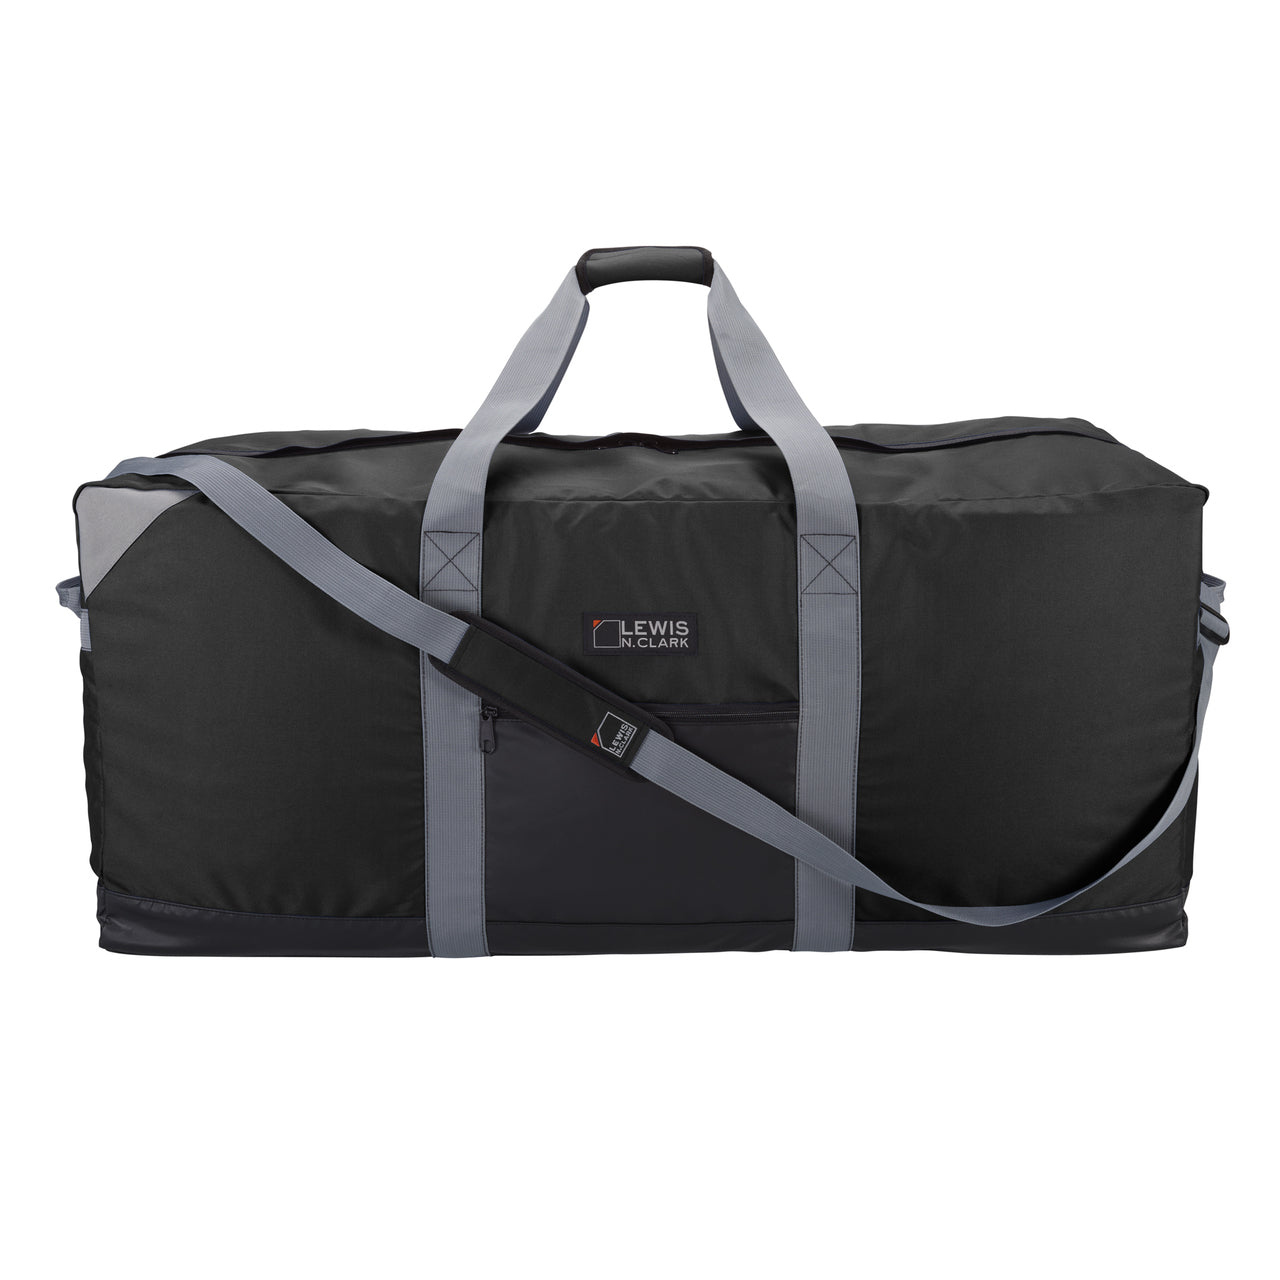 Lewis N Clark Heavy Duty 40 Inch X-Large Duffel with Neoprene Gear Bag